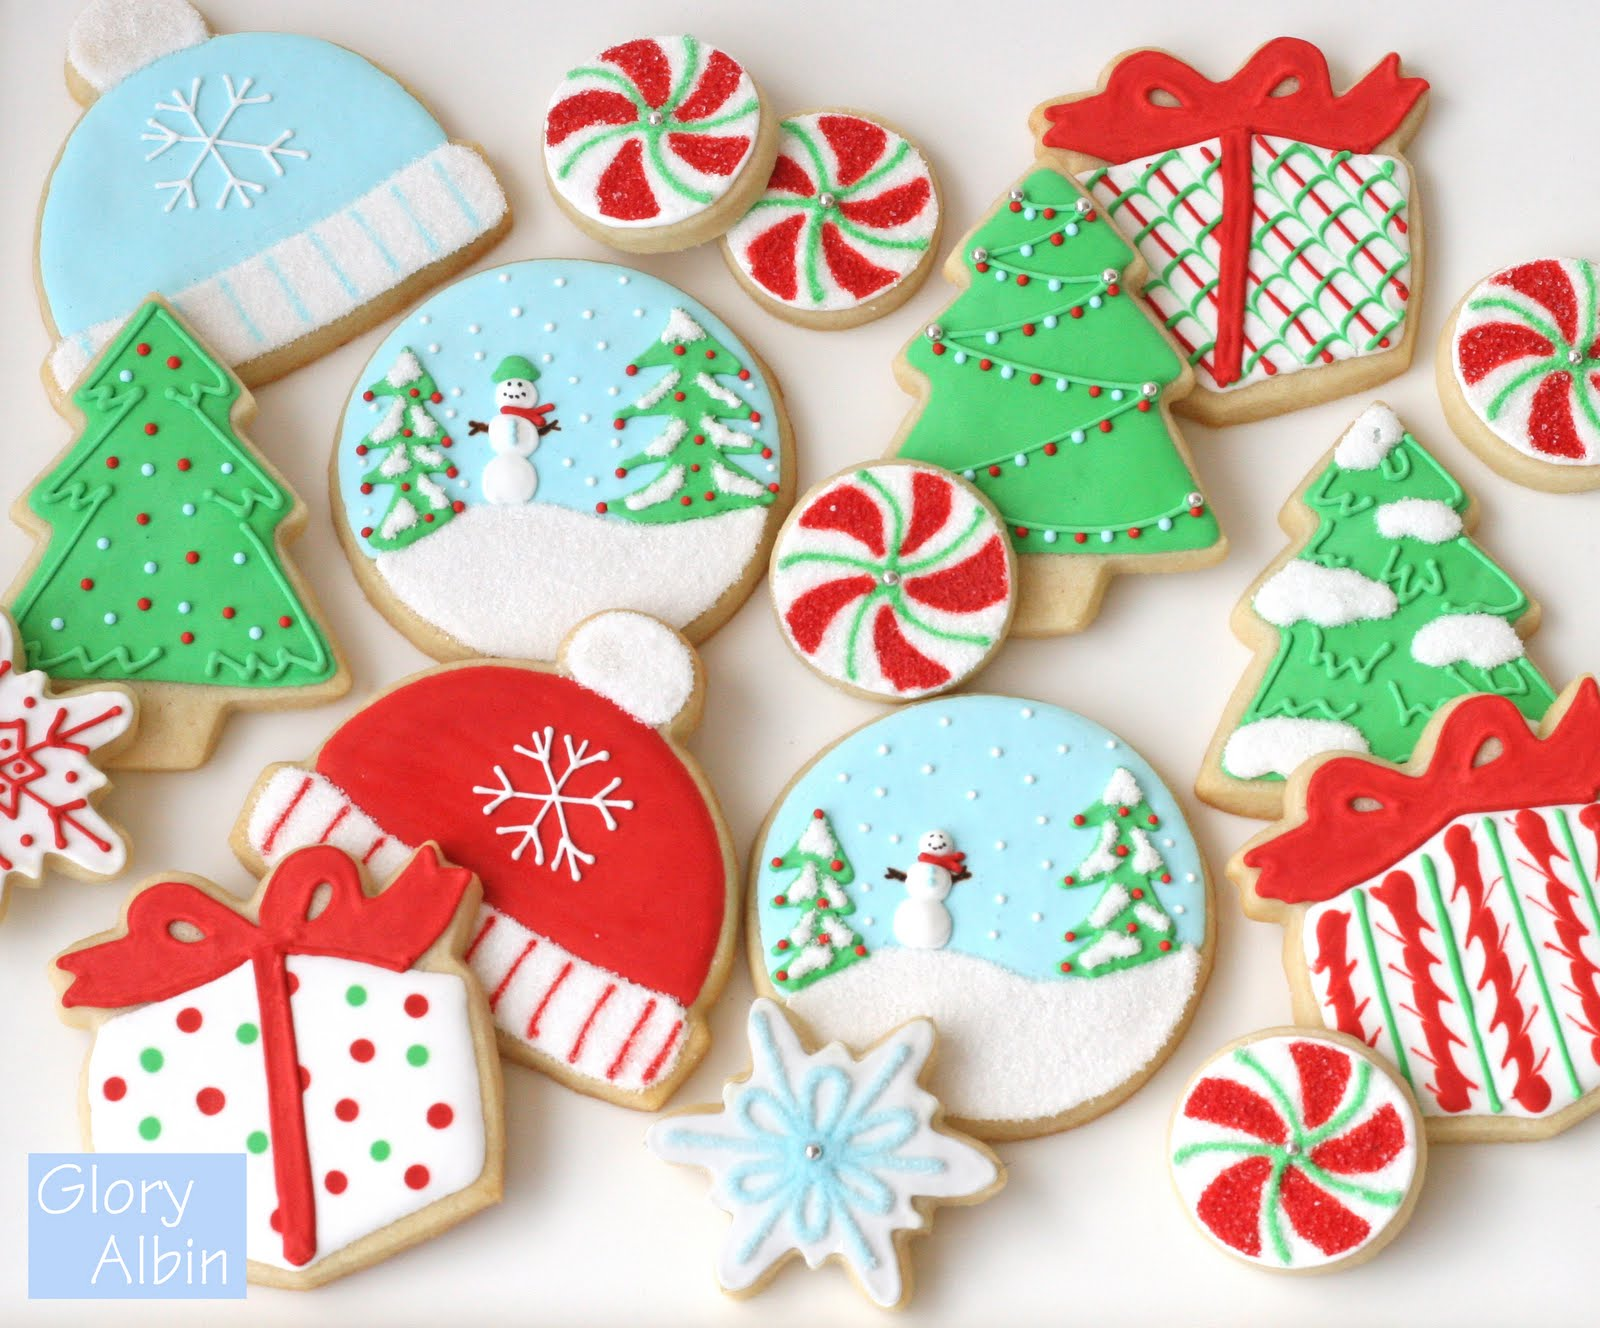 decorating sugar cookies with royal icing glorious treats